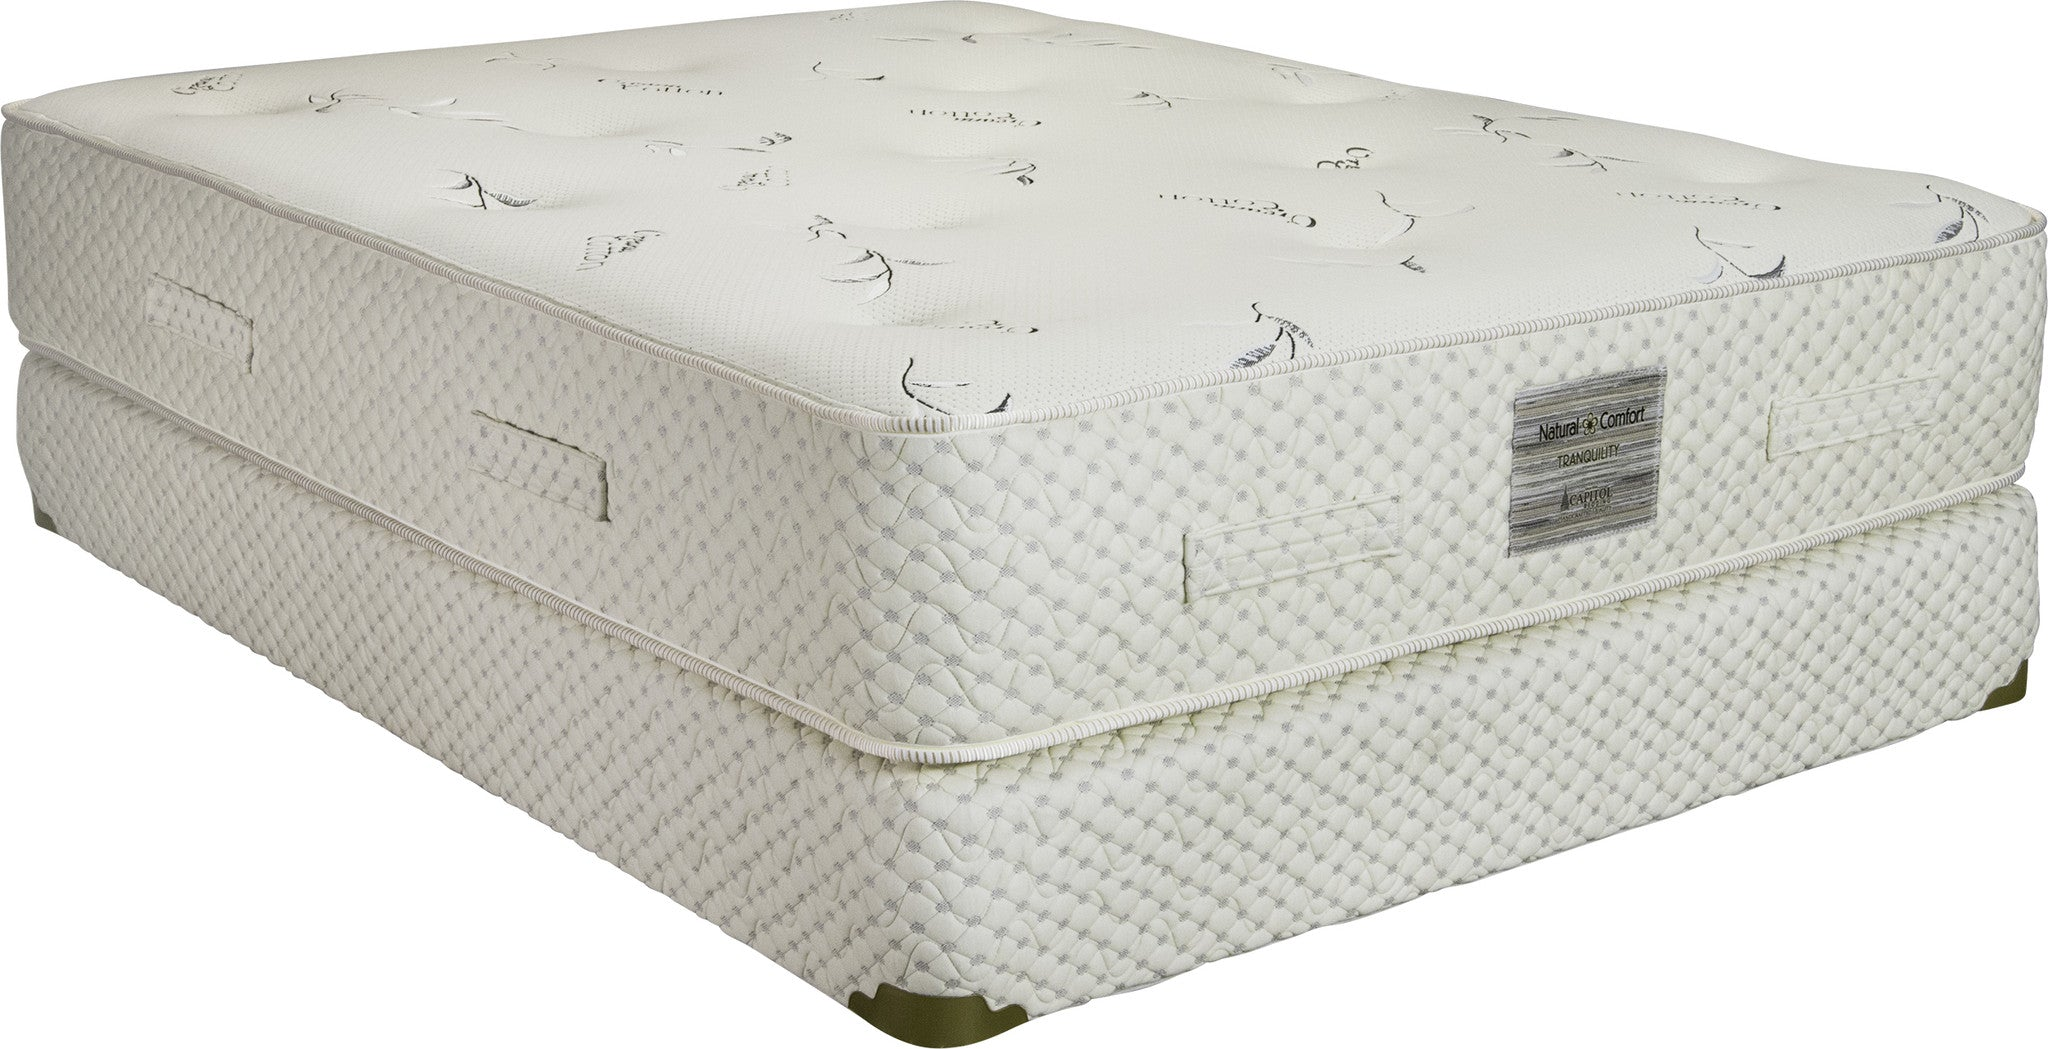 prices products omniphase original at affordable organic quality mattress cutaway provides futon in carboncool experts dfw